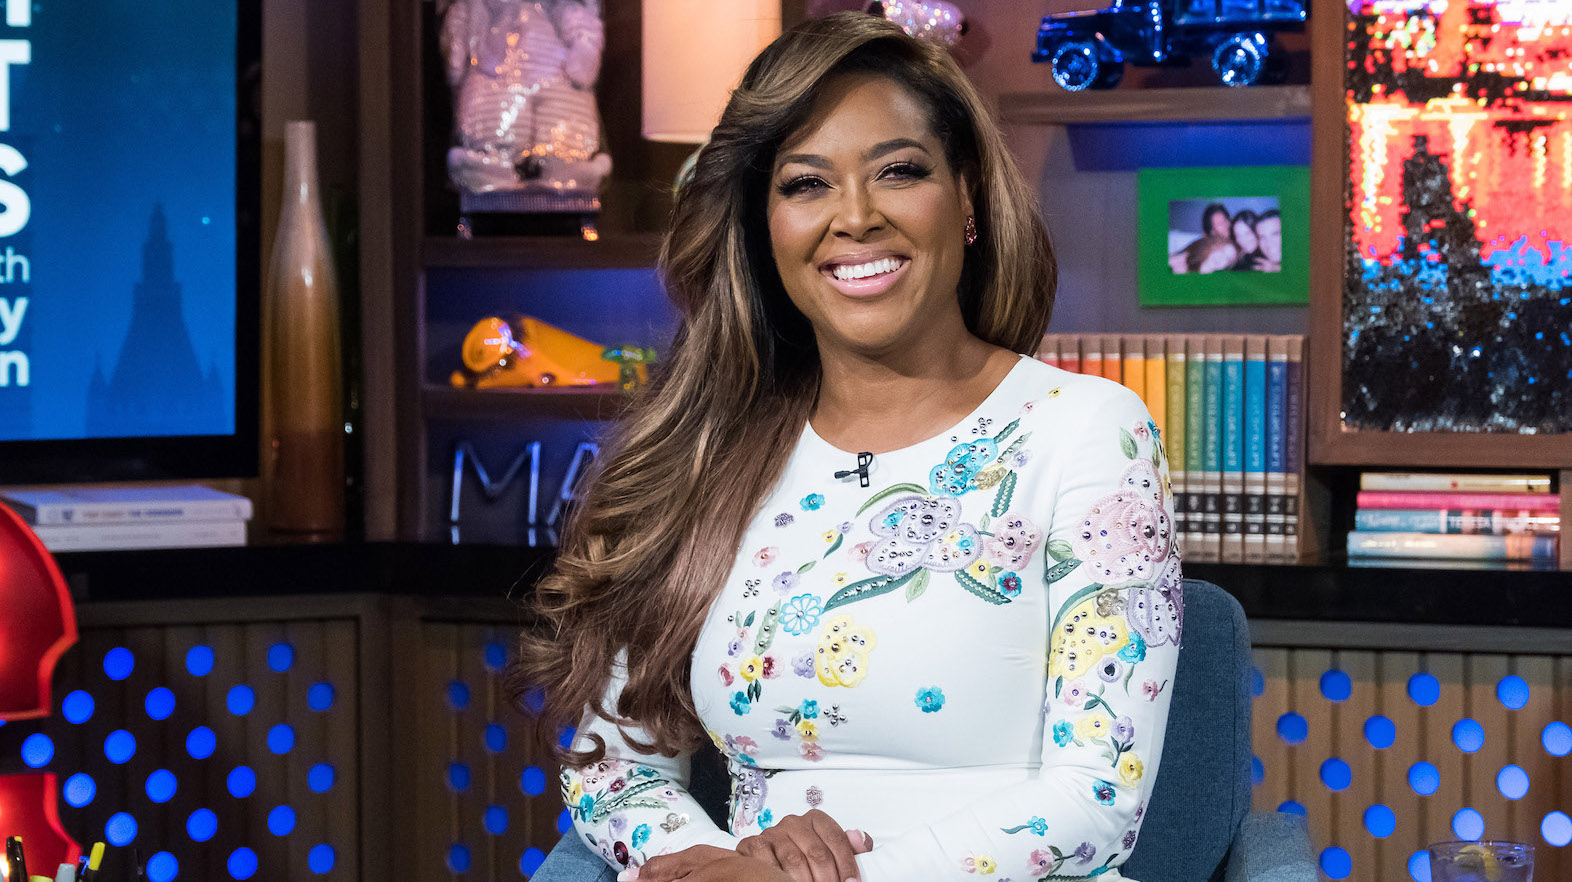 Kenya Moore Calls Baby Brooklyn The Love Of Her Life And Shares Gorgeous Memories With Her And Marc Daly